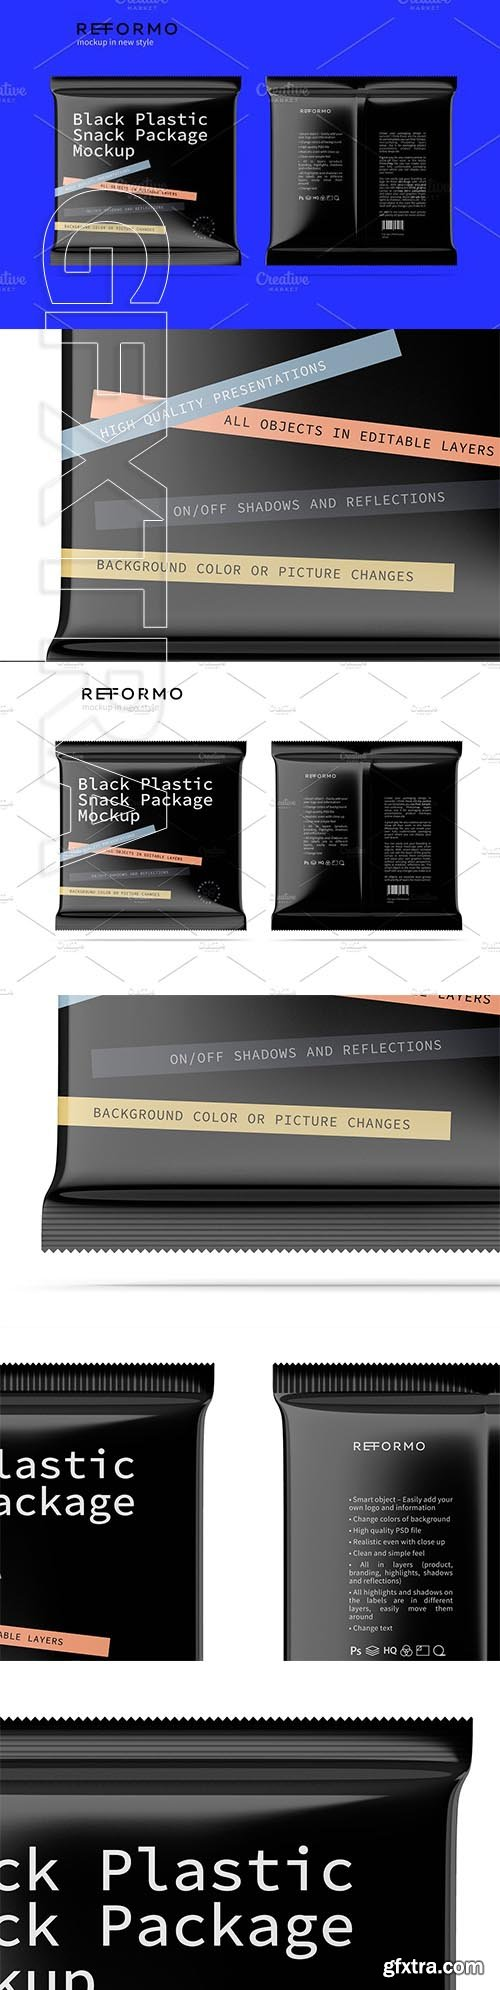 CreativeMarket - Black Plastic Snack Package Mockup 3245594